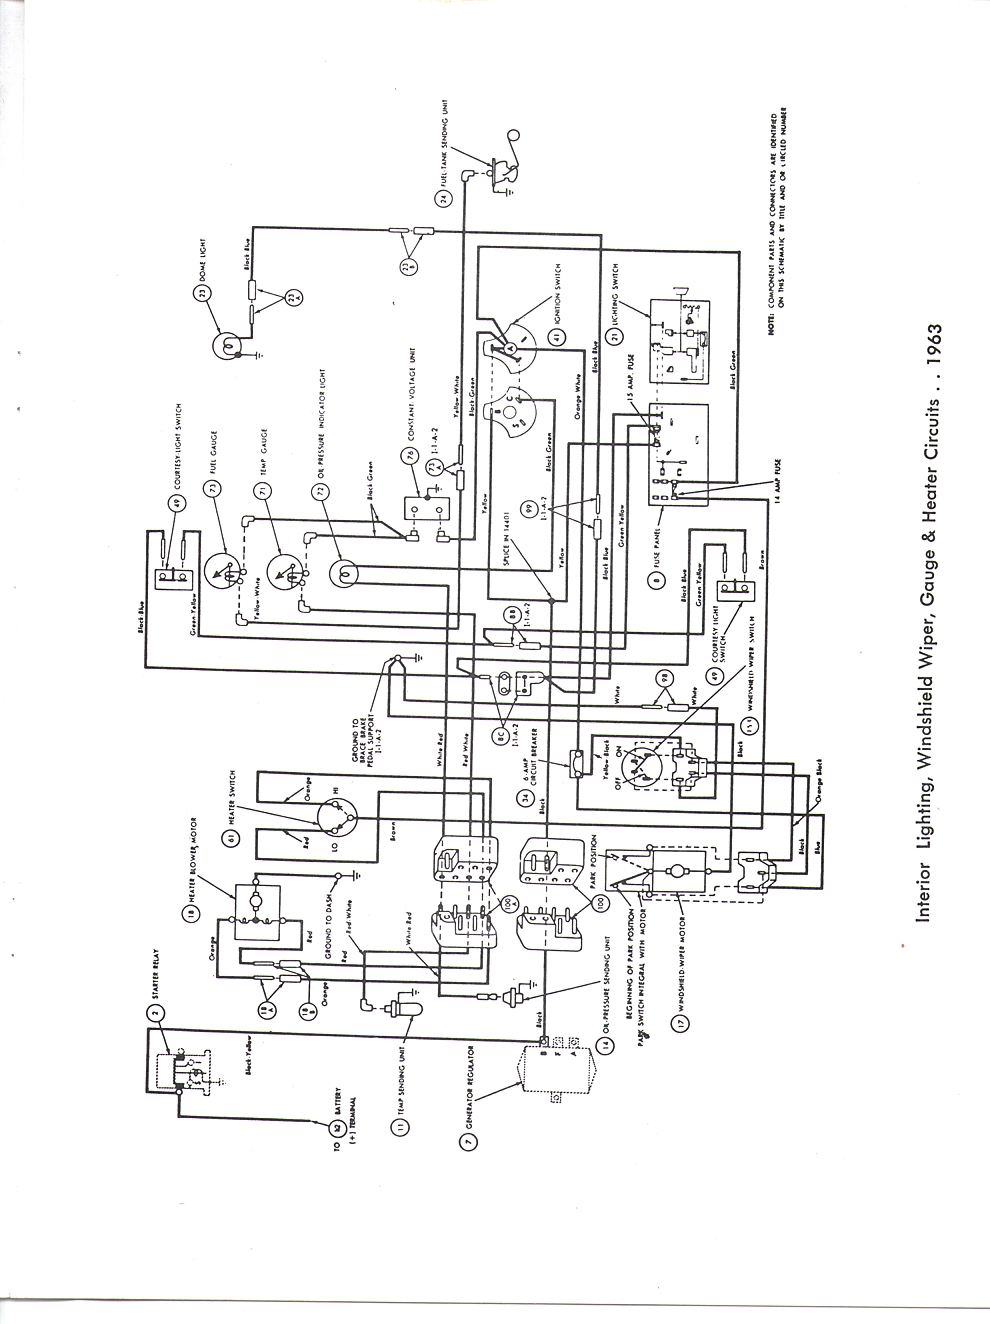 Jeep cherokee steering column wiring diagram get